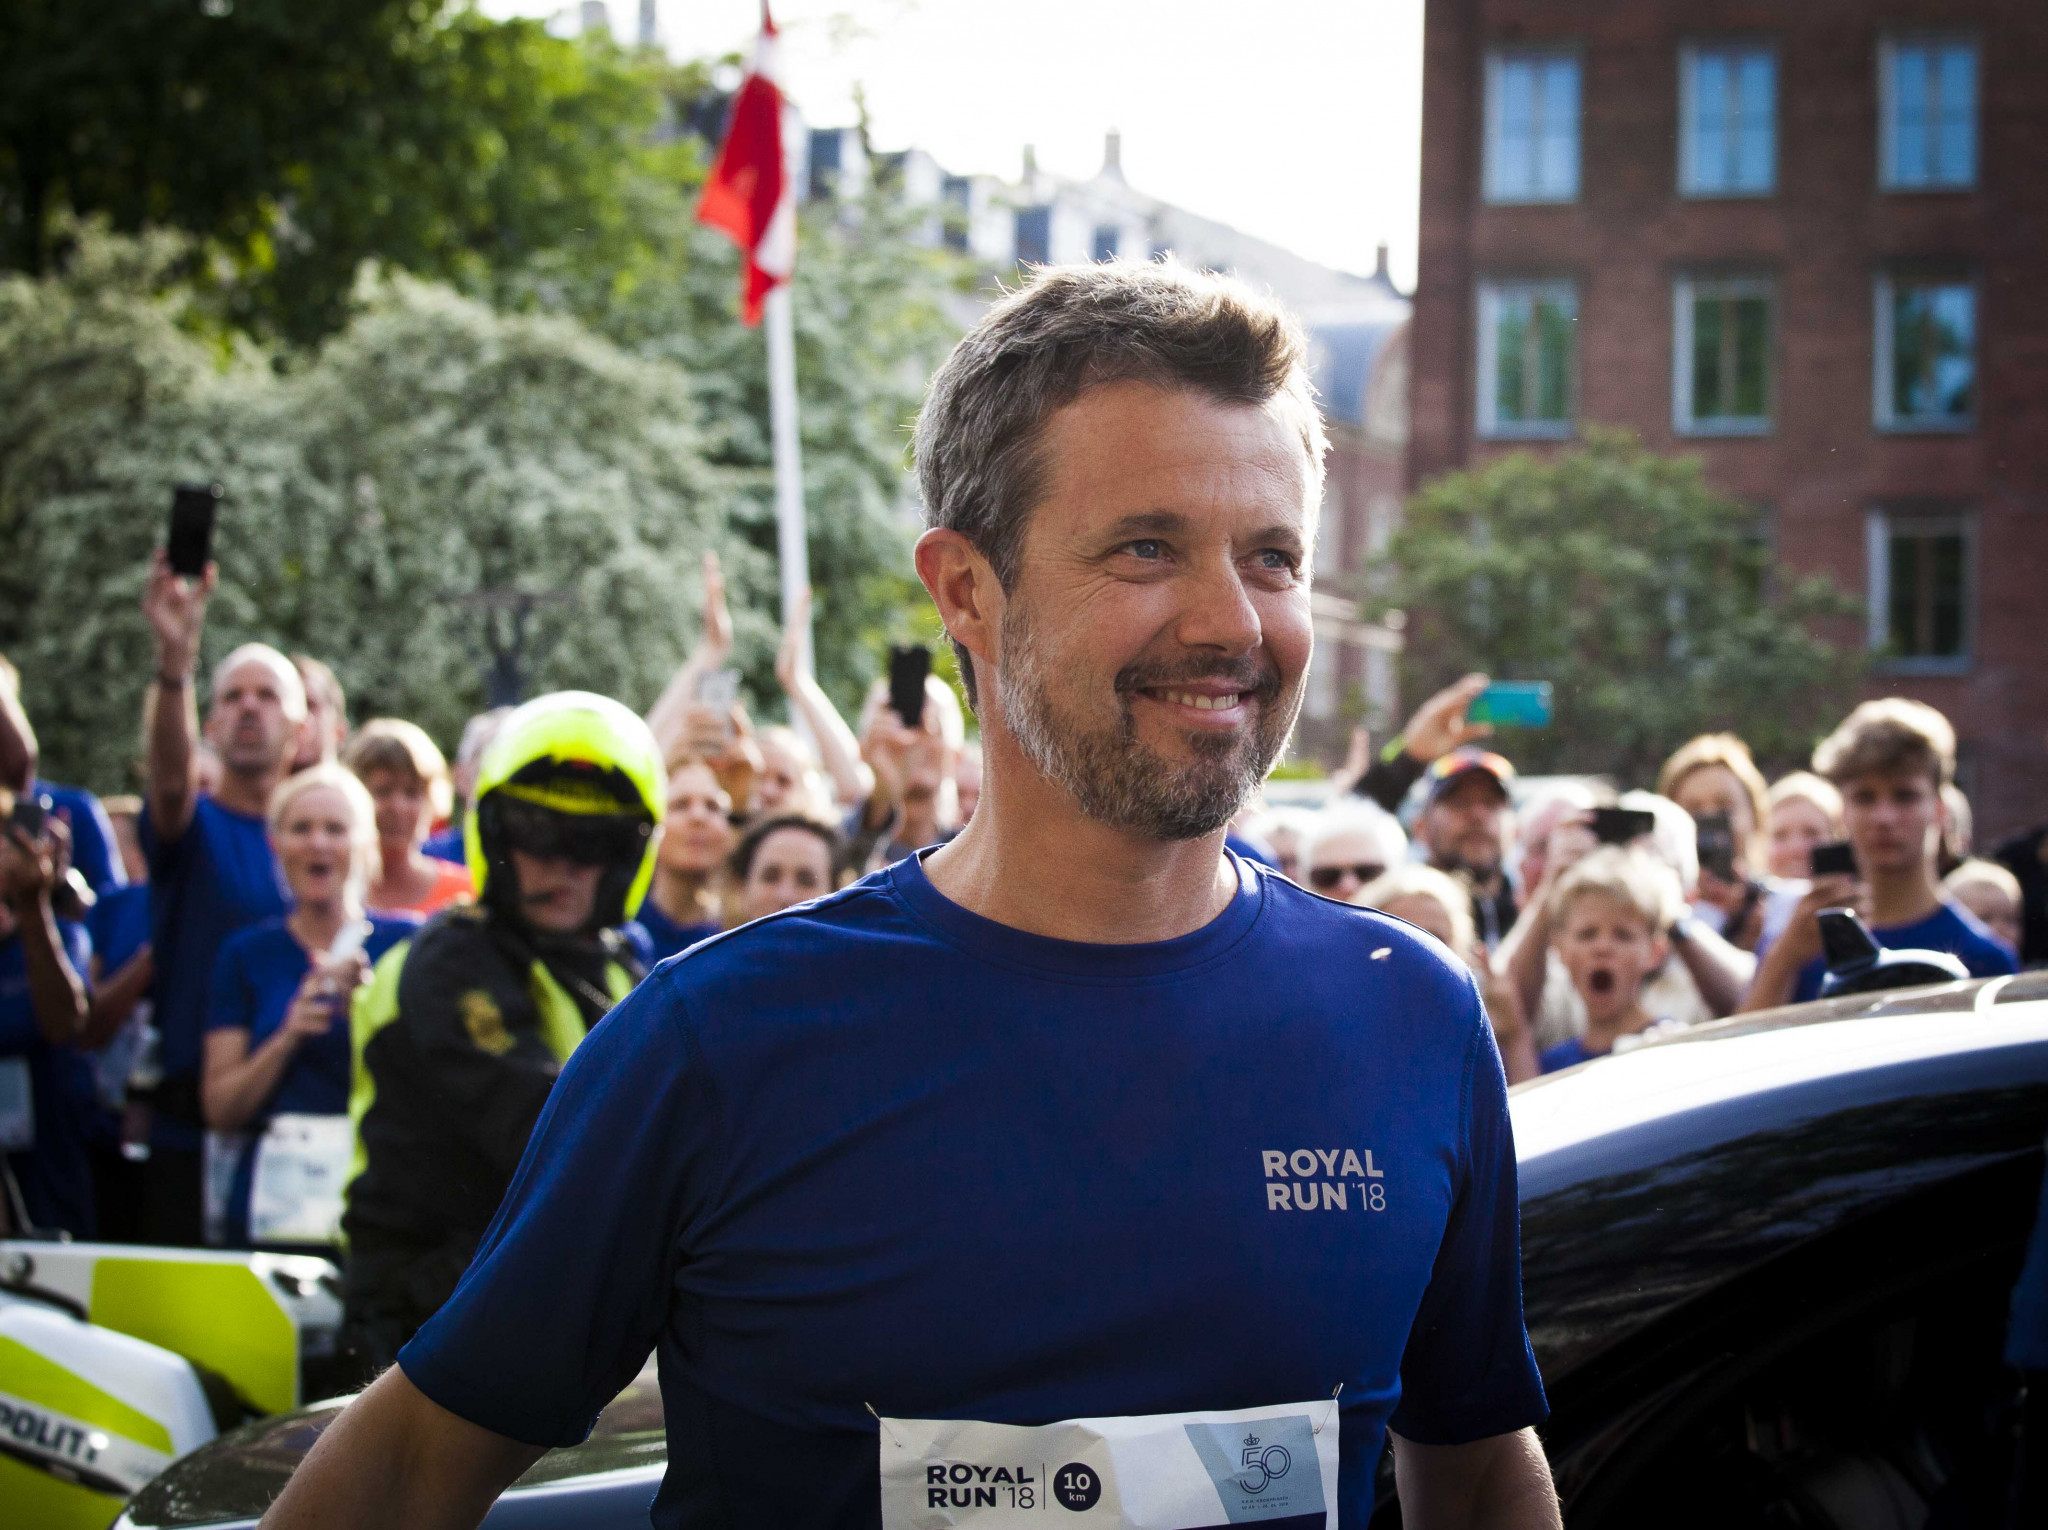 IOC member Prince Frederik runs in five cities to celebrate 50th birthday